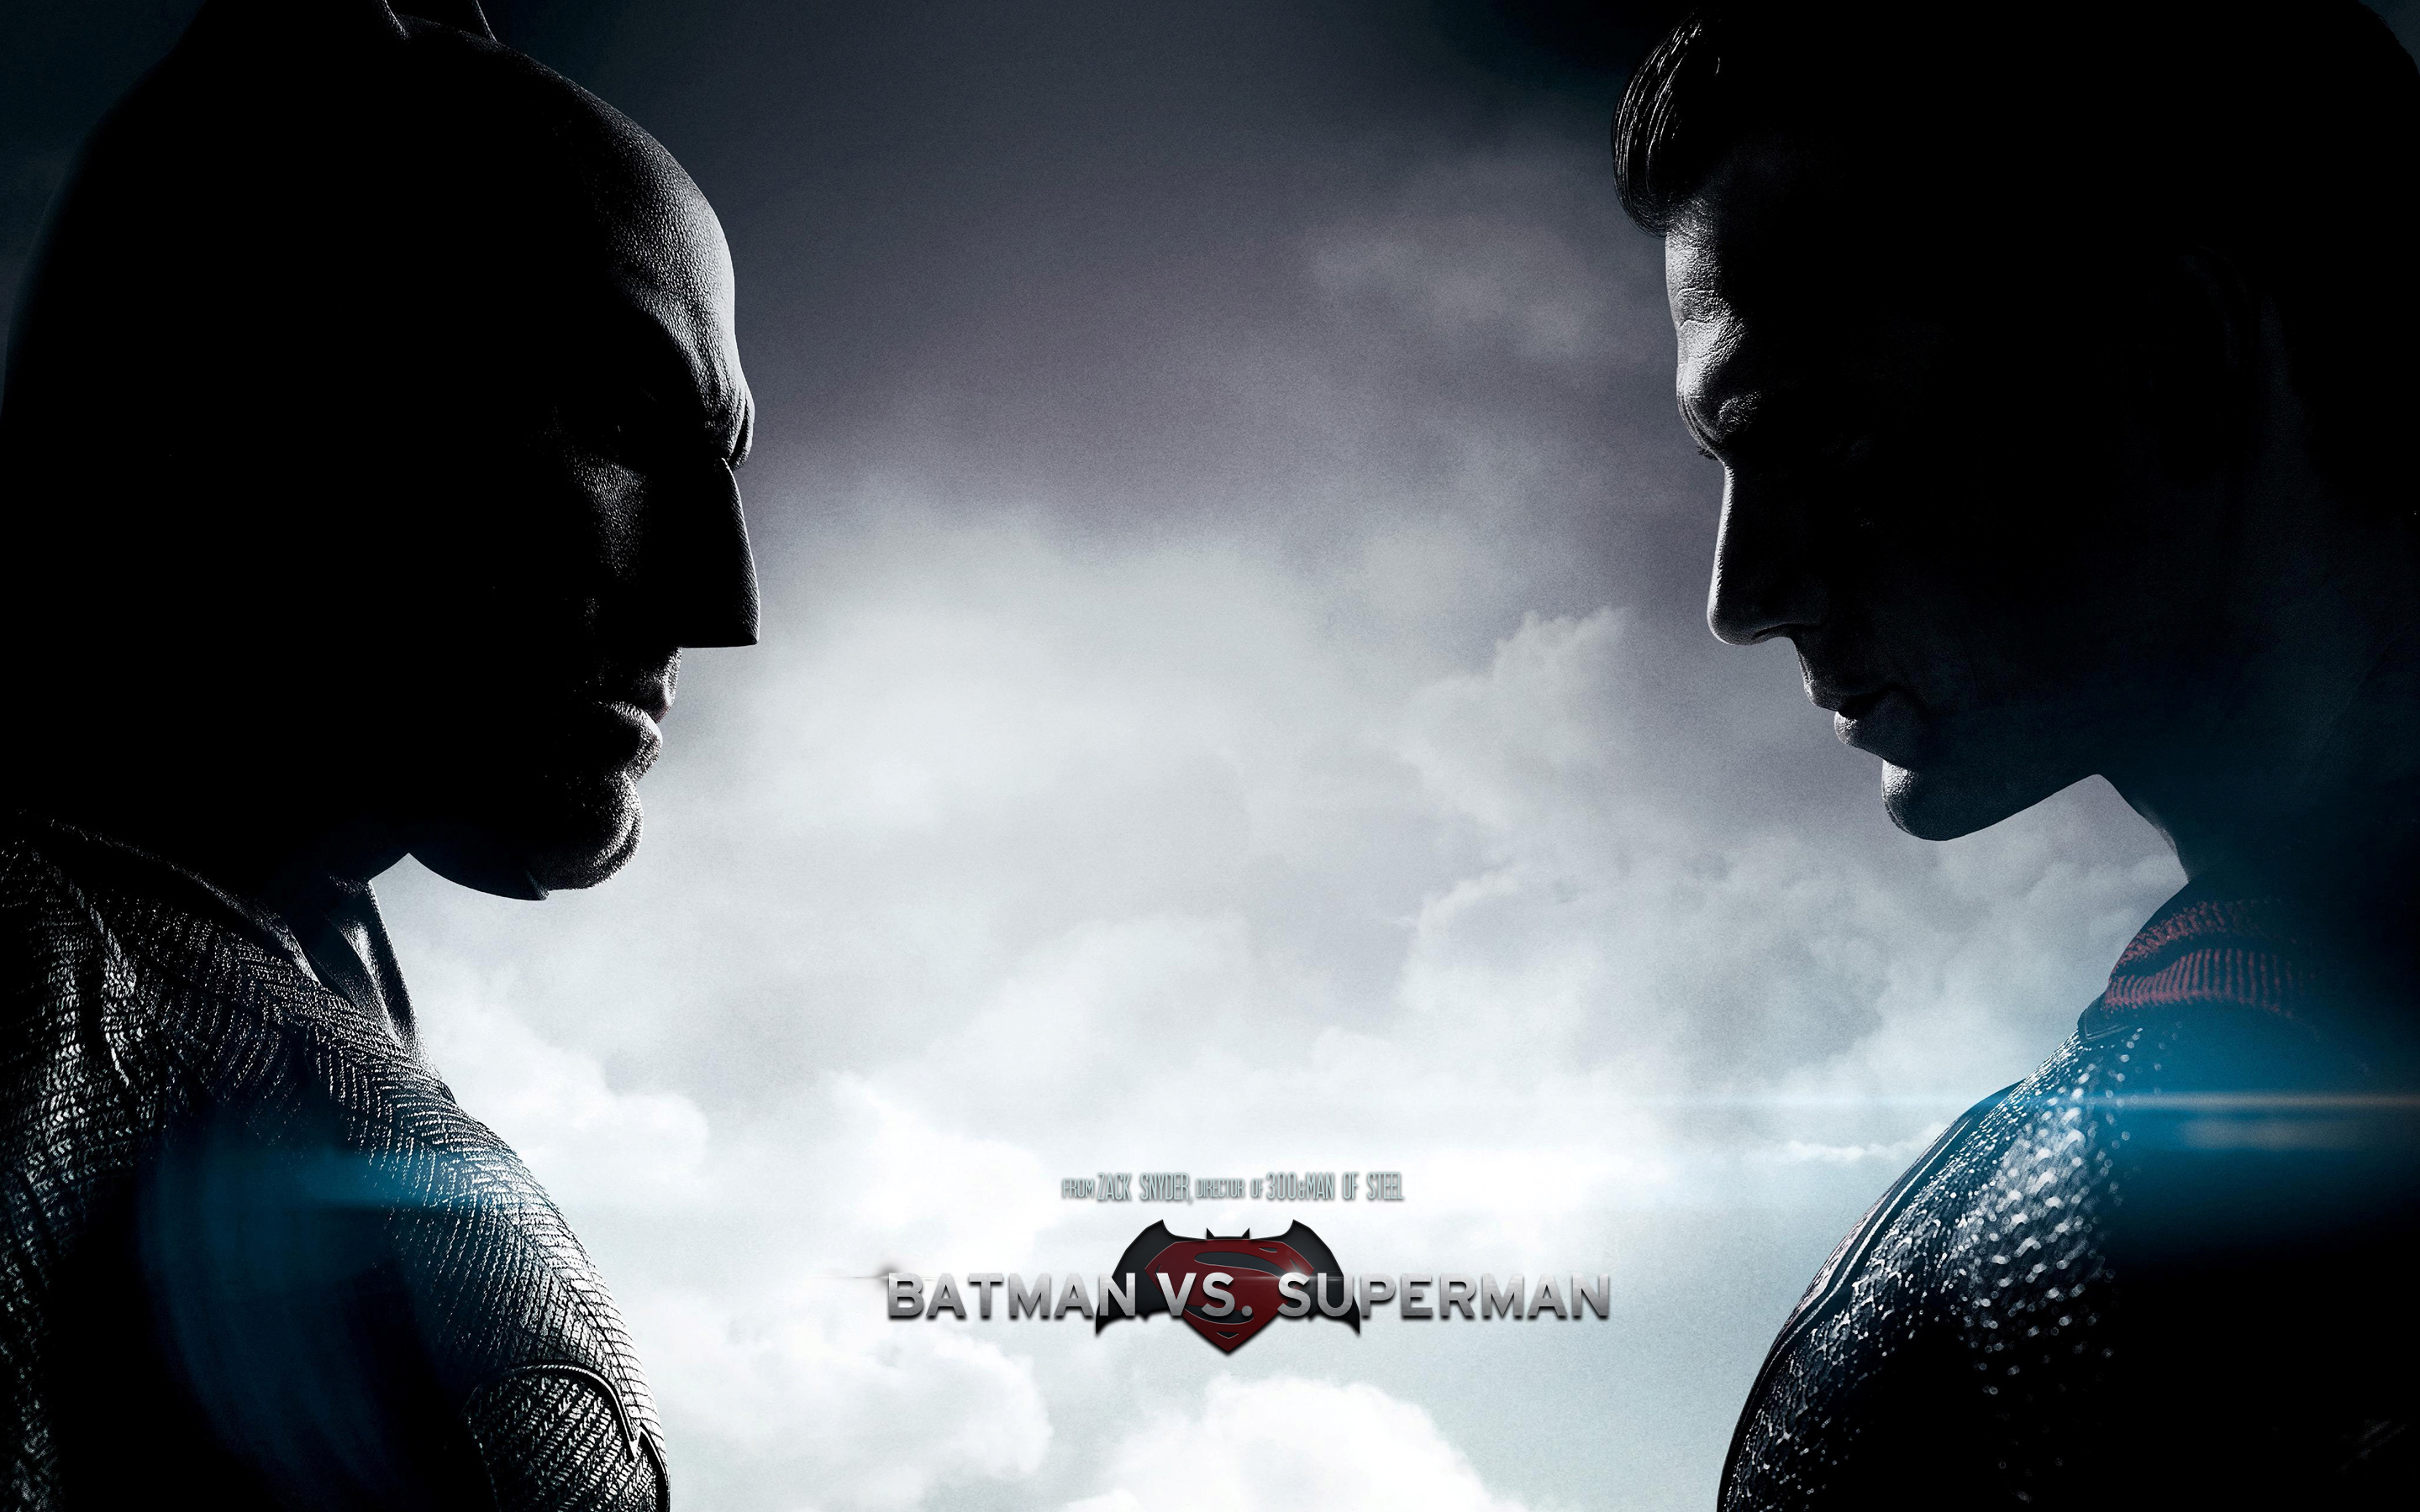 Batman v Superman Movie Wallpapers HD Wallpapers 2880x1800